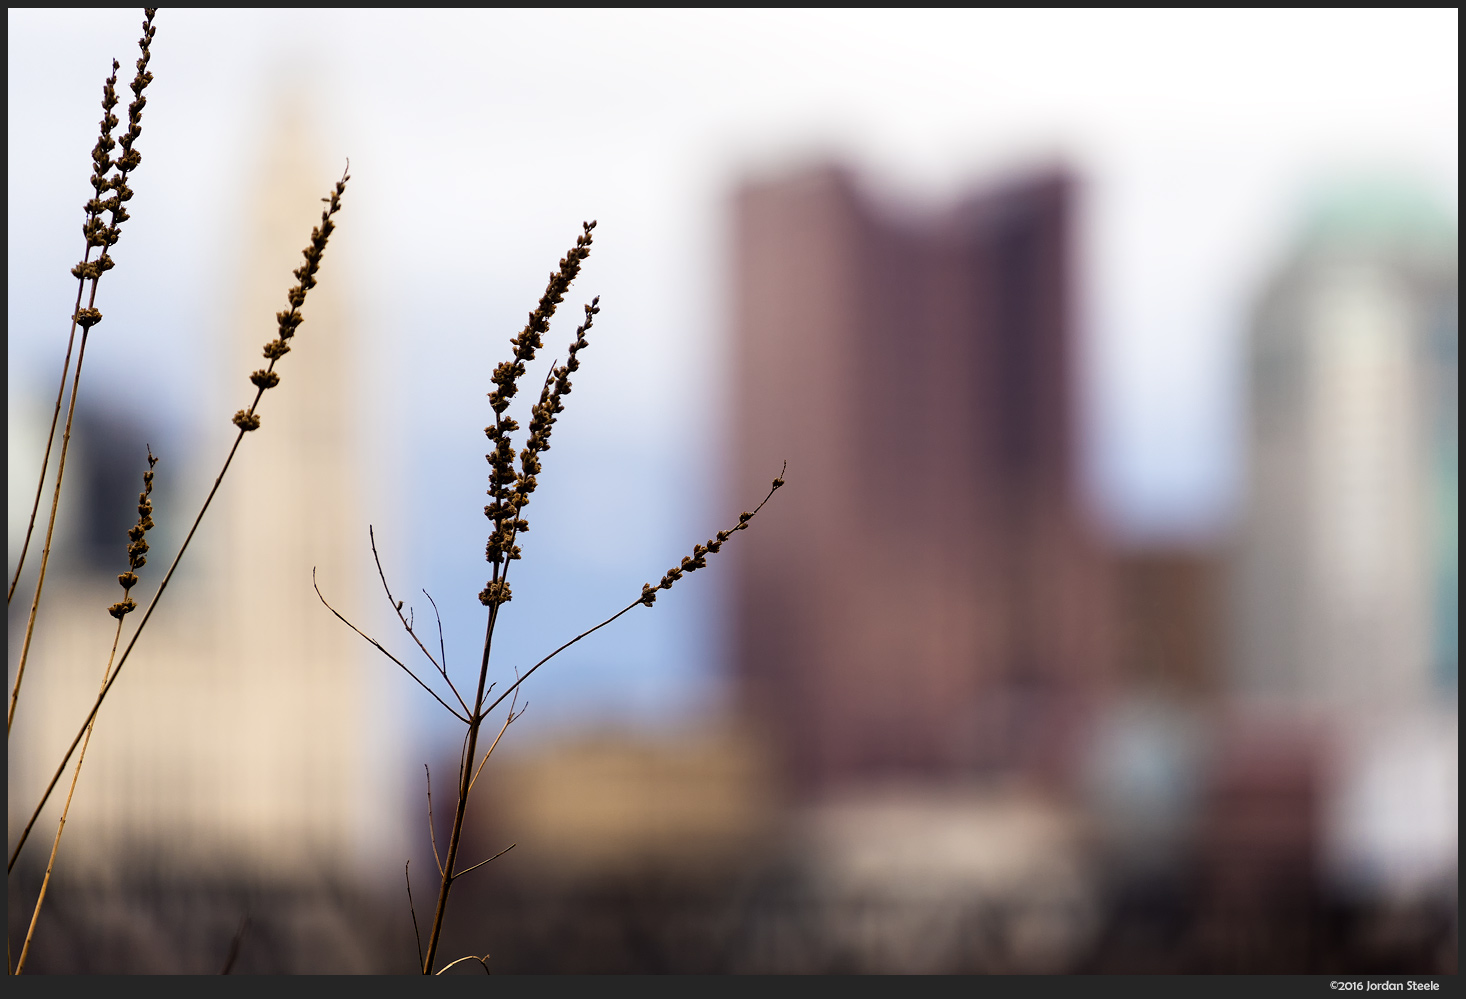 City in the Background - Sony A7 II with Sony FE 70-200mm f/4 G OSS @ 200mm, f/4